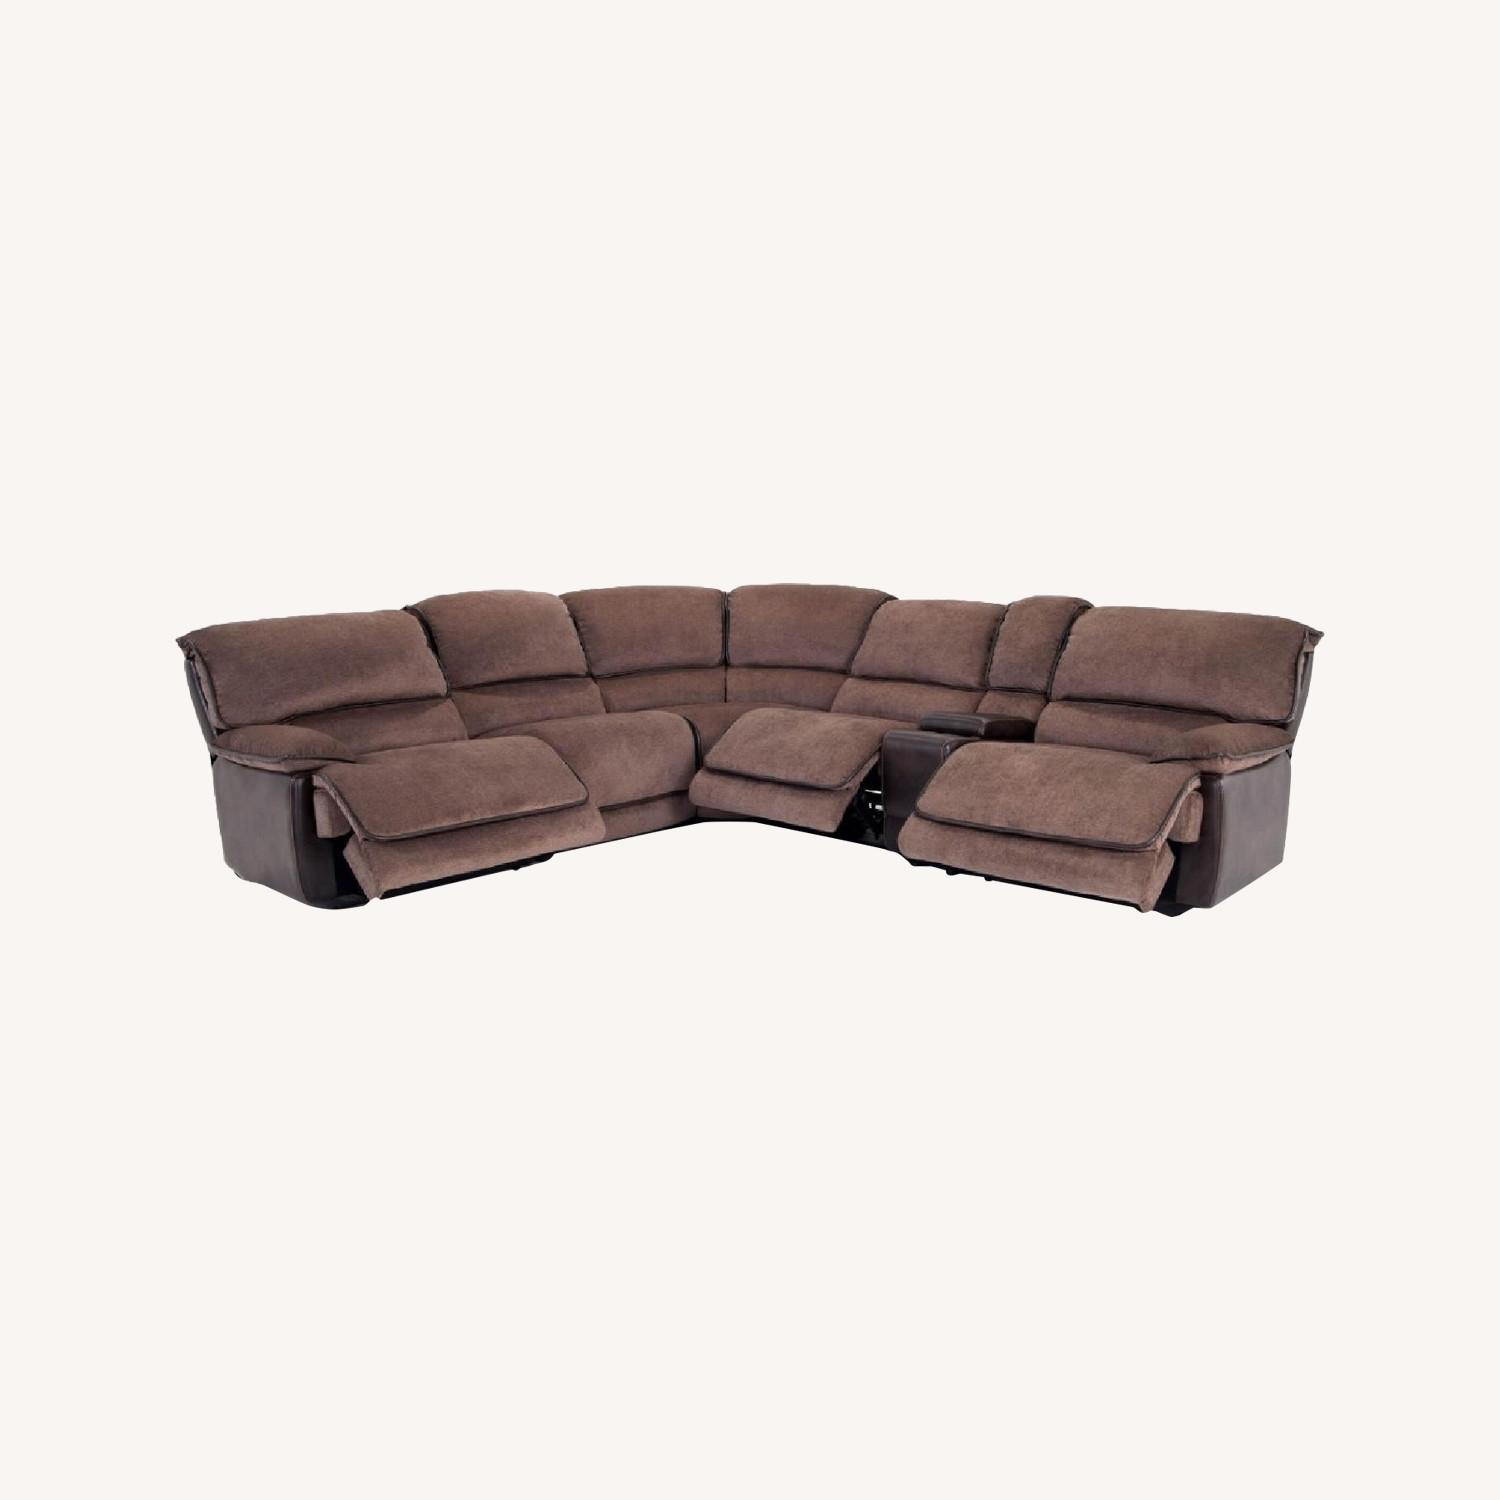 Bob's Discount 6 Piece Reclining Couch - image-0